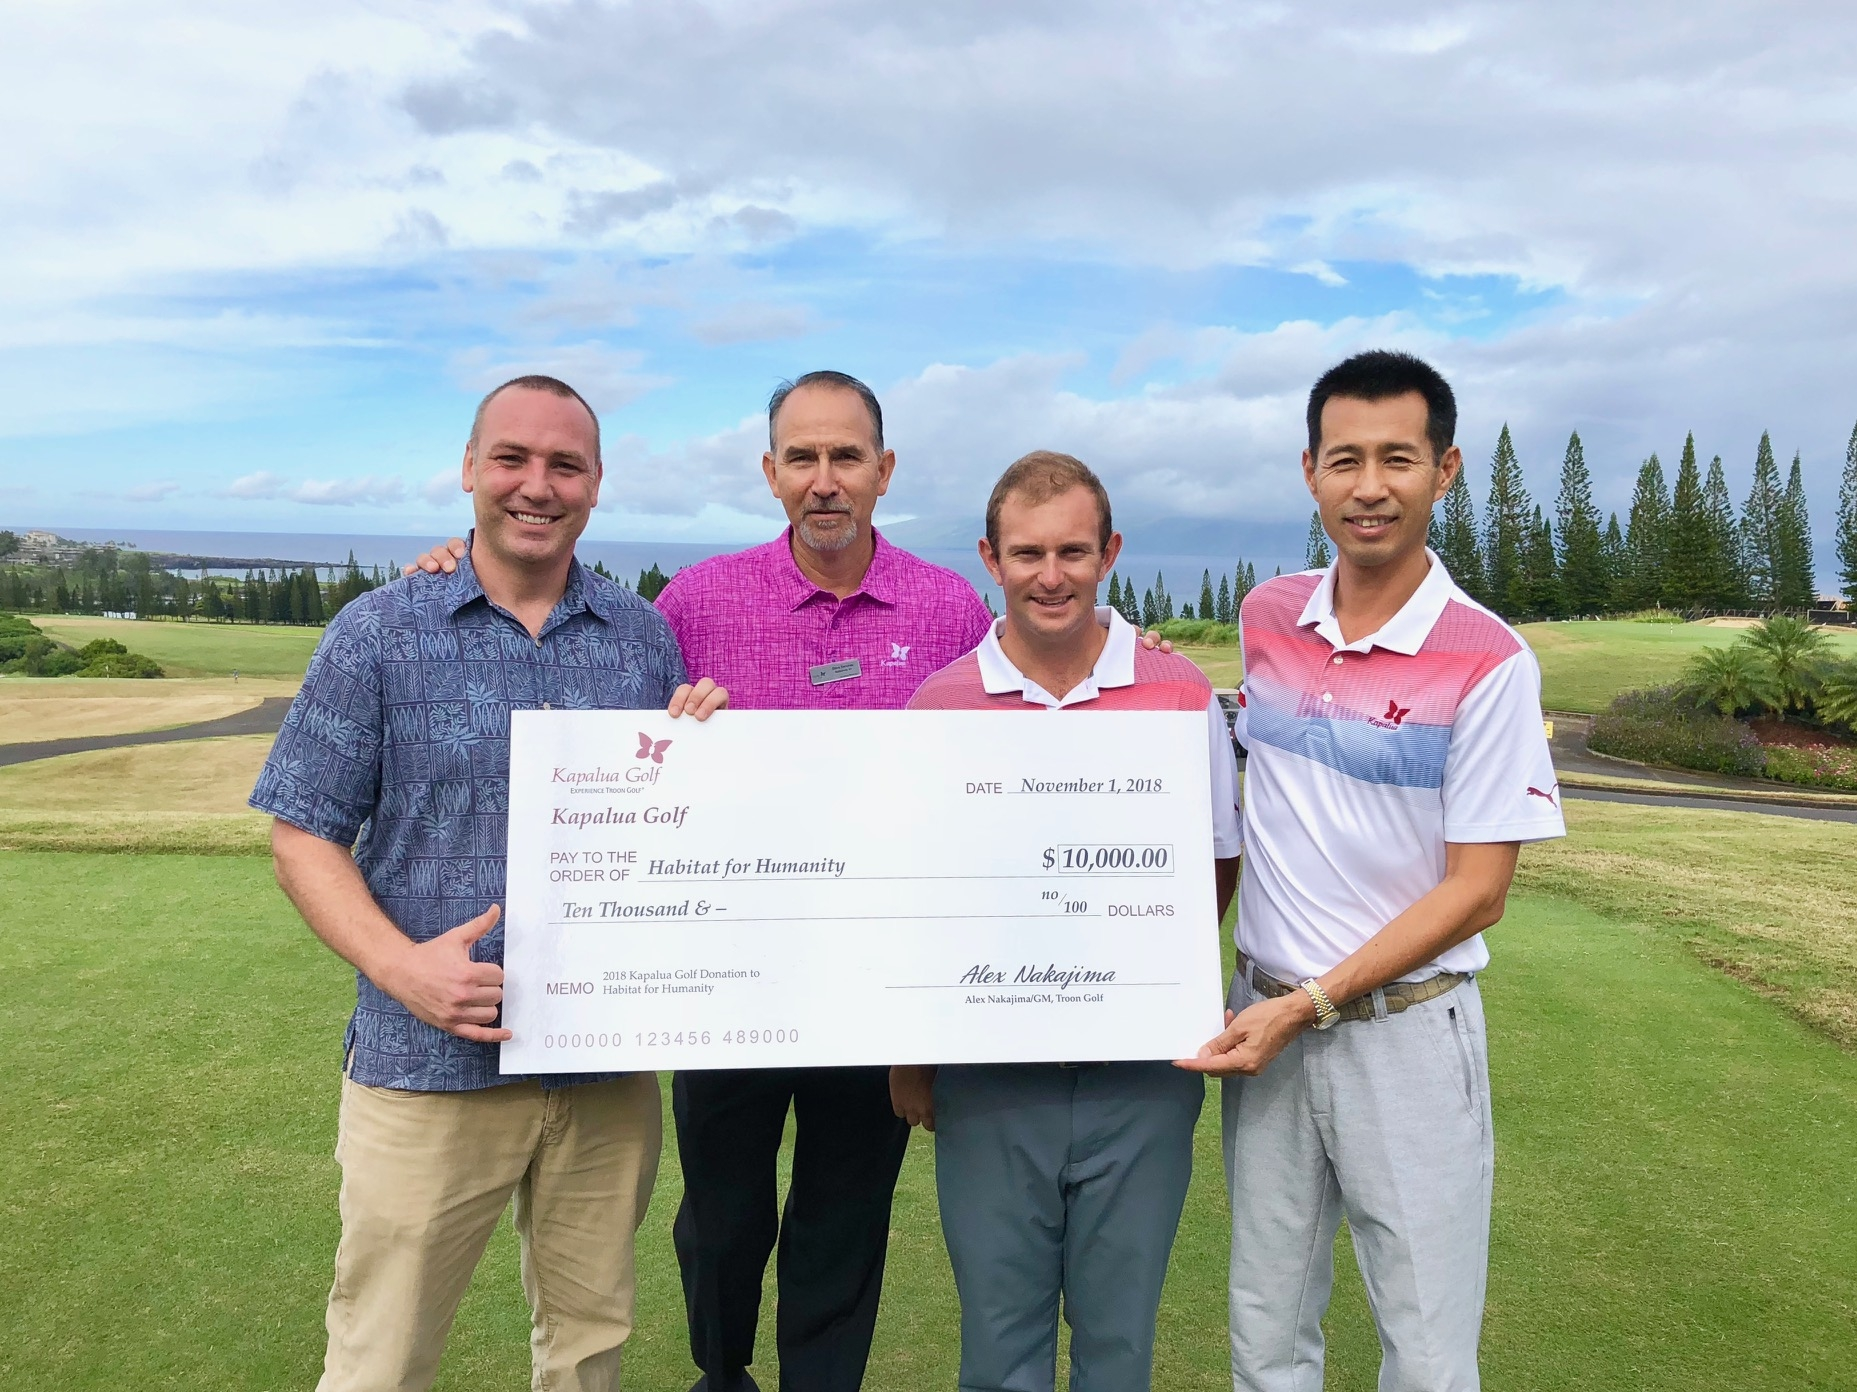 Kapalua Golf Donates $10,000 To Habitat For Humanity In Support Of West Maui Relief Efforts